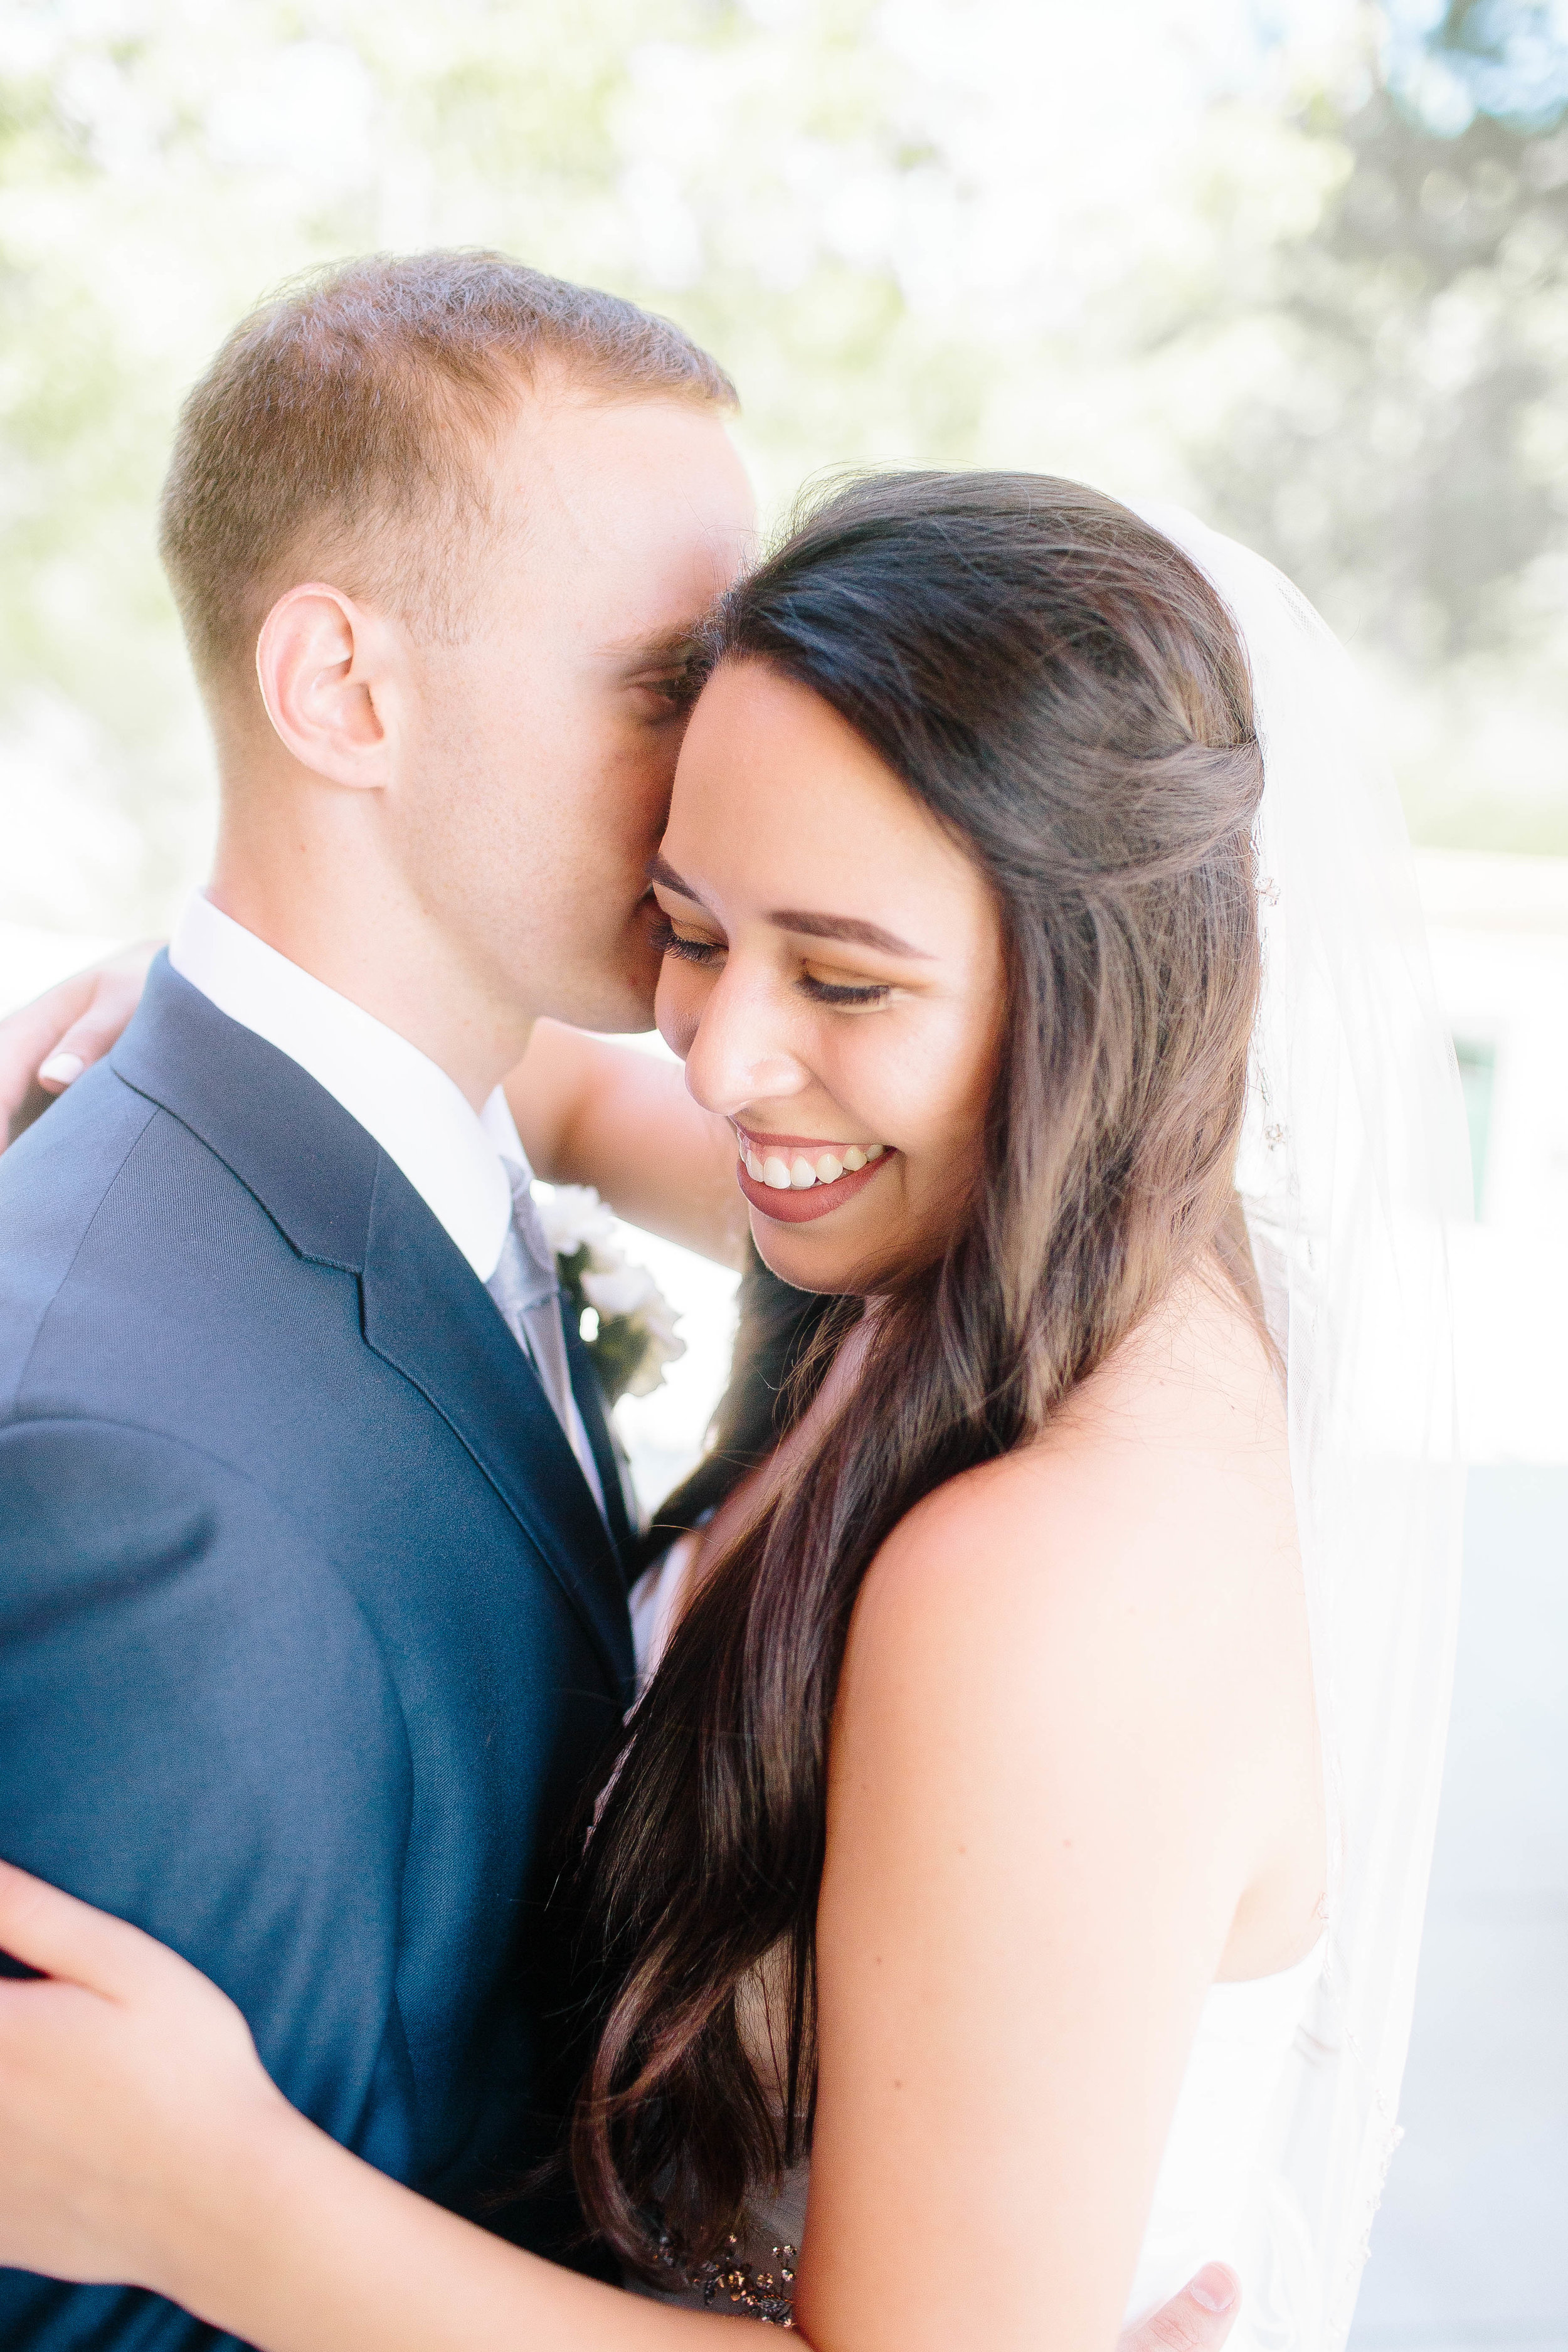 Bride and Groom- Bridals- Mermaid Wedding Gown- Fitted Wedding Gown- Barber Park Wedding- Boise Wedding- Boise Wedding Photographer- Idaho Wedding- Idaho Wedding Photographer